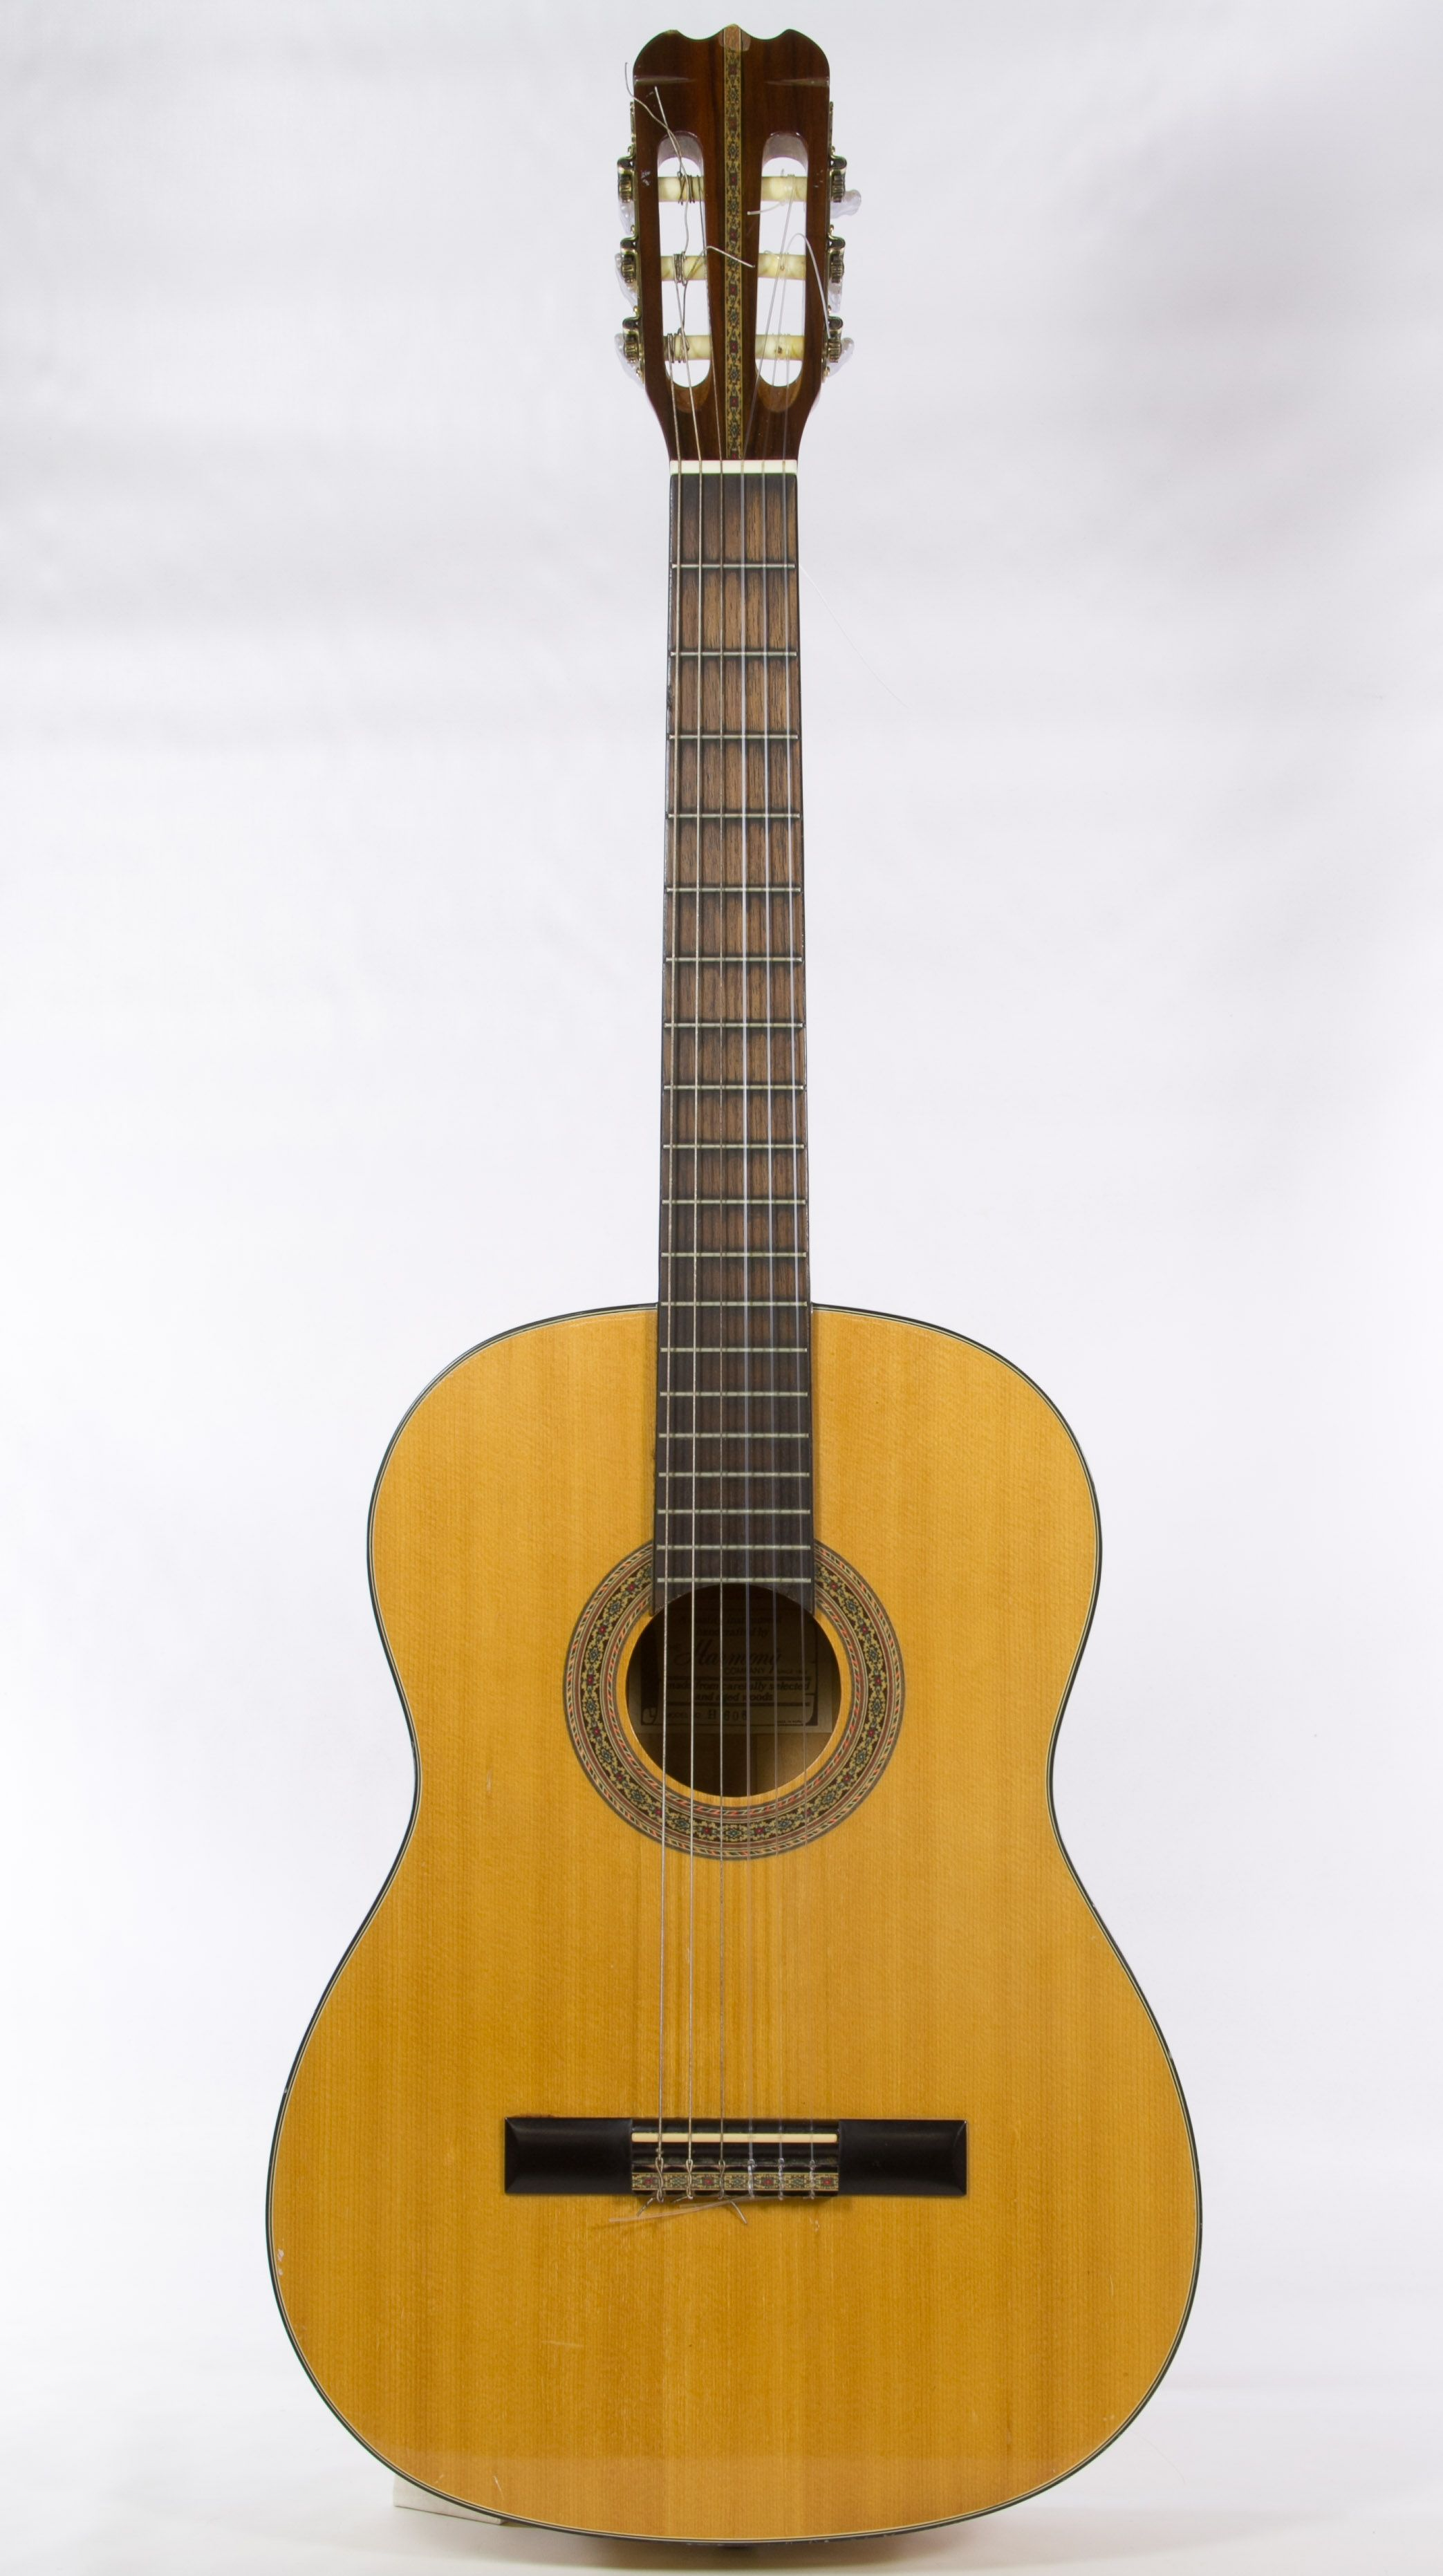 Lot 378 harmony model h606 acoustic guitar having a blonde wood lot 378 harmony model h606 acoustic guitar having a blonde wood frame a jeuxipadfo Gallery